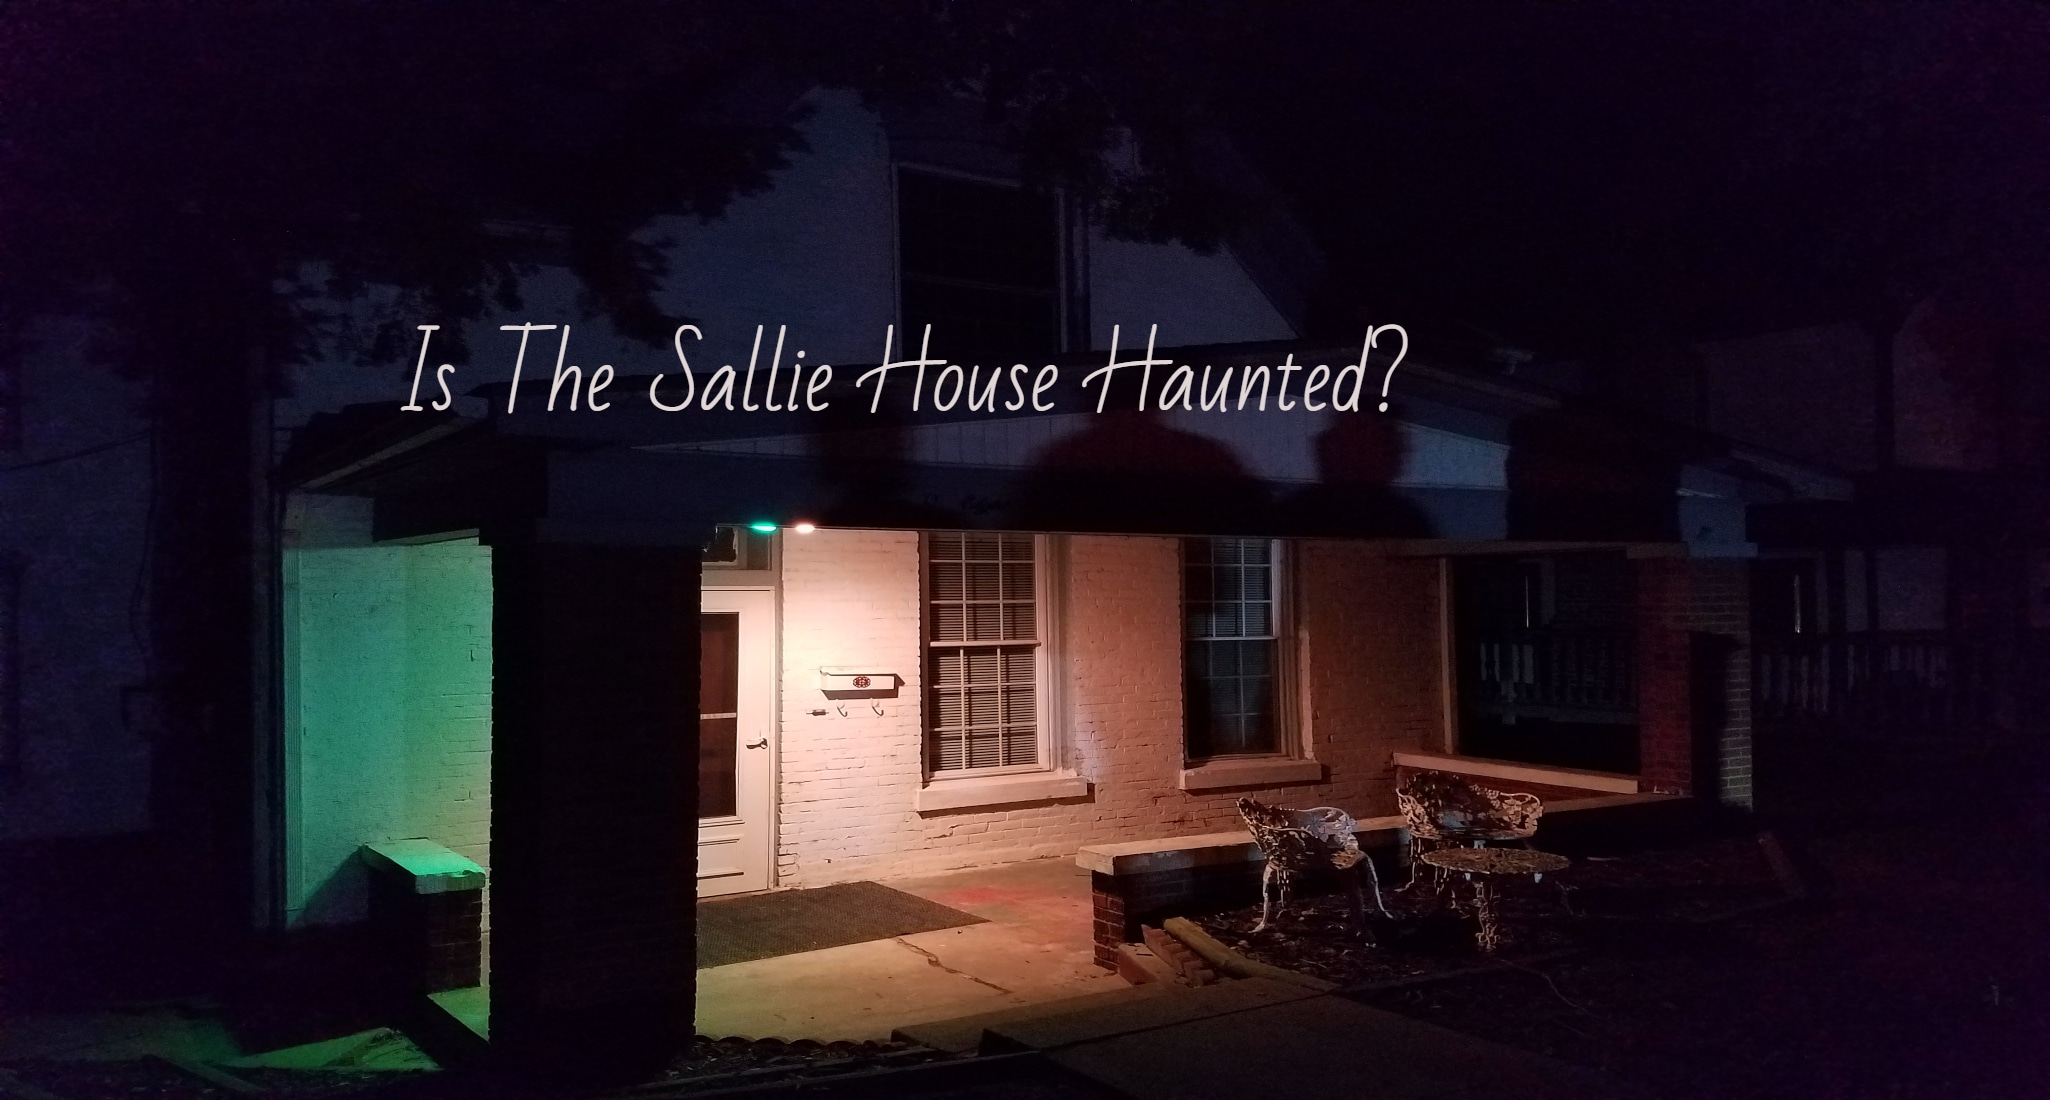 The Sallie House In Atchison, Kansas Challenged My Perception Of The Word Haunted